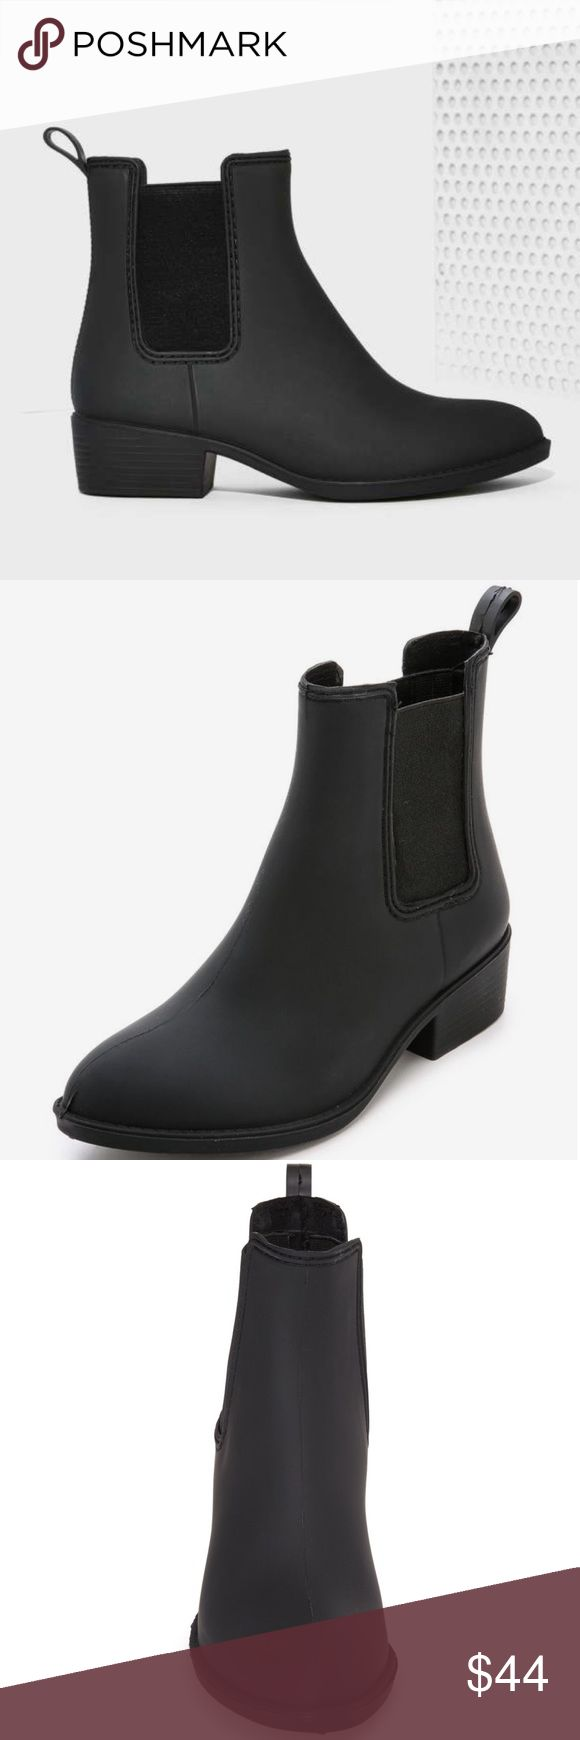 NEW Black Sleek Chelsea Rain Boot Ankle Boots •Brand New in Box • Black Chelsea Rain Boots • All materials are vegan • Rubber • Stretchy Elastic to make Boot easy to put on and take off • True to size• Feel free to ask questions!• 🌸 www.thefairyden.com 🌸 Shoes Winter & Rain Boots